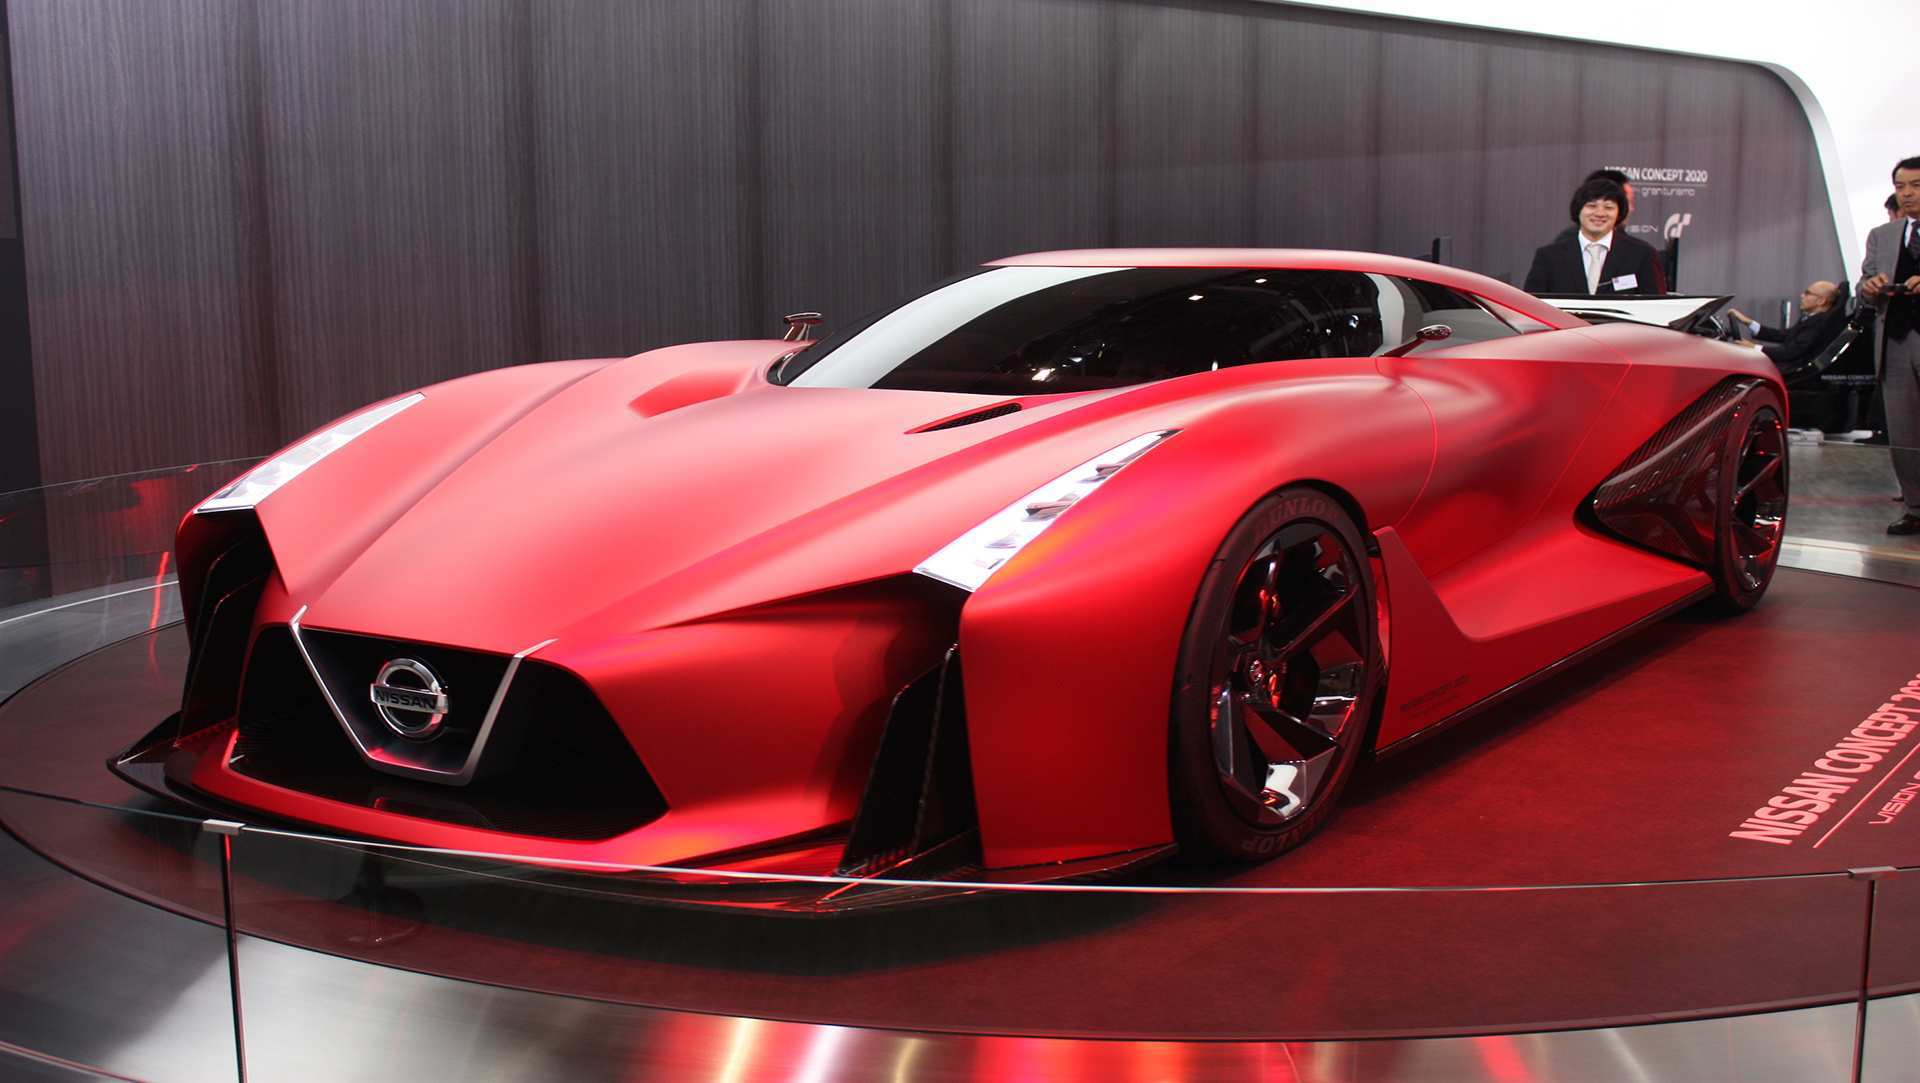 84 The Nissan Gtr R36 Concept 2020 Images with Nissan Gtr R36 Concept 2020